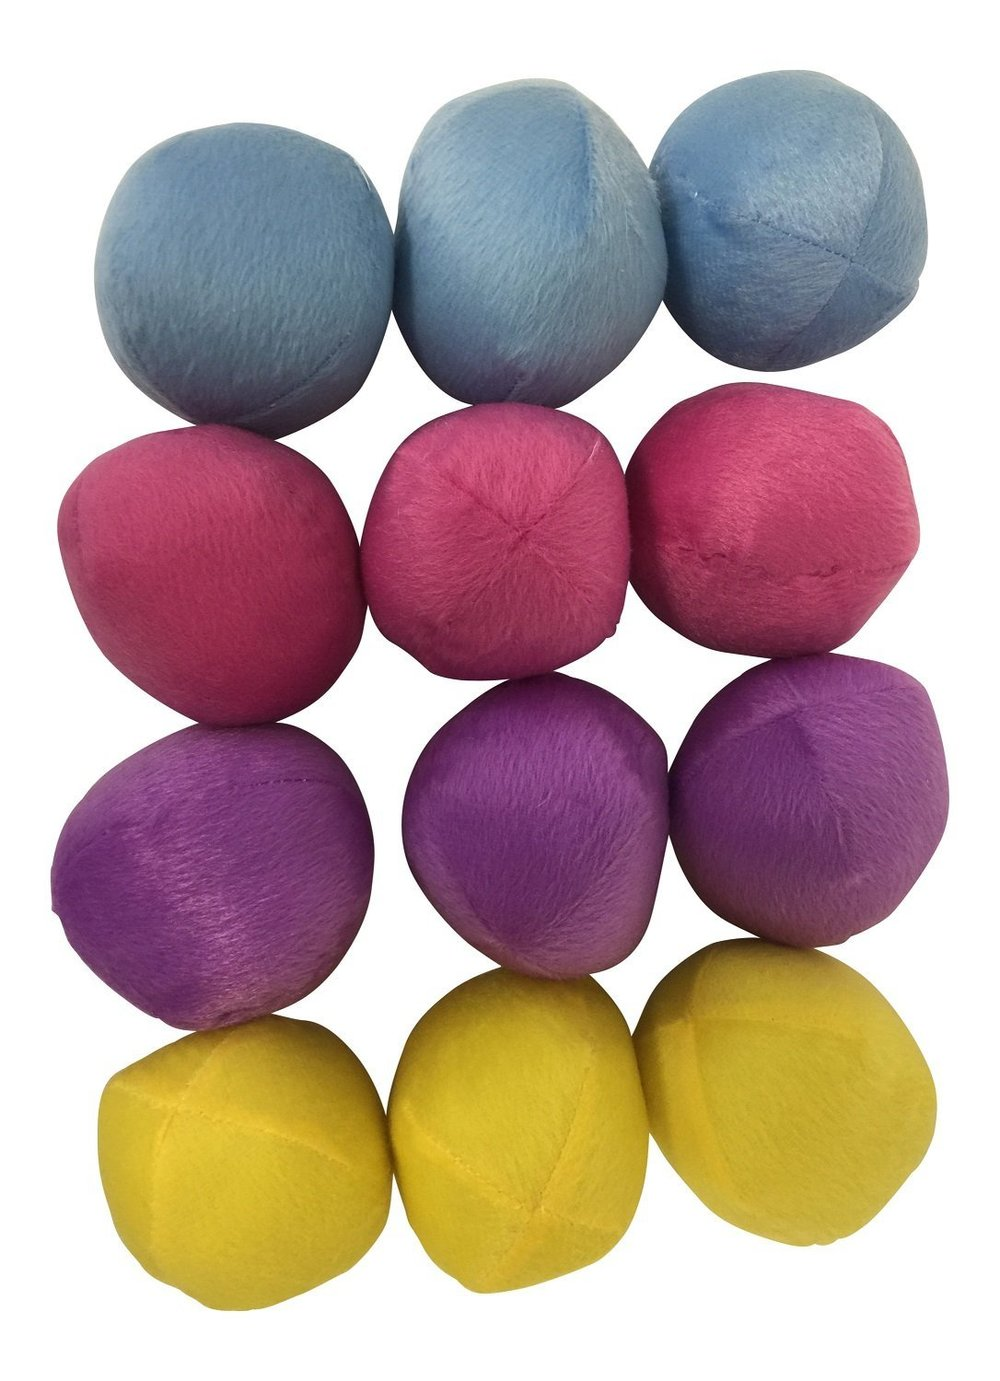 Plush Squeaky Balls for Dogs or Cats